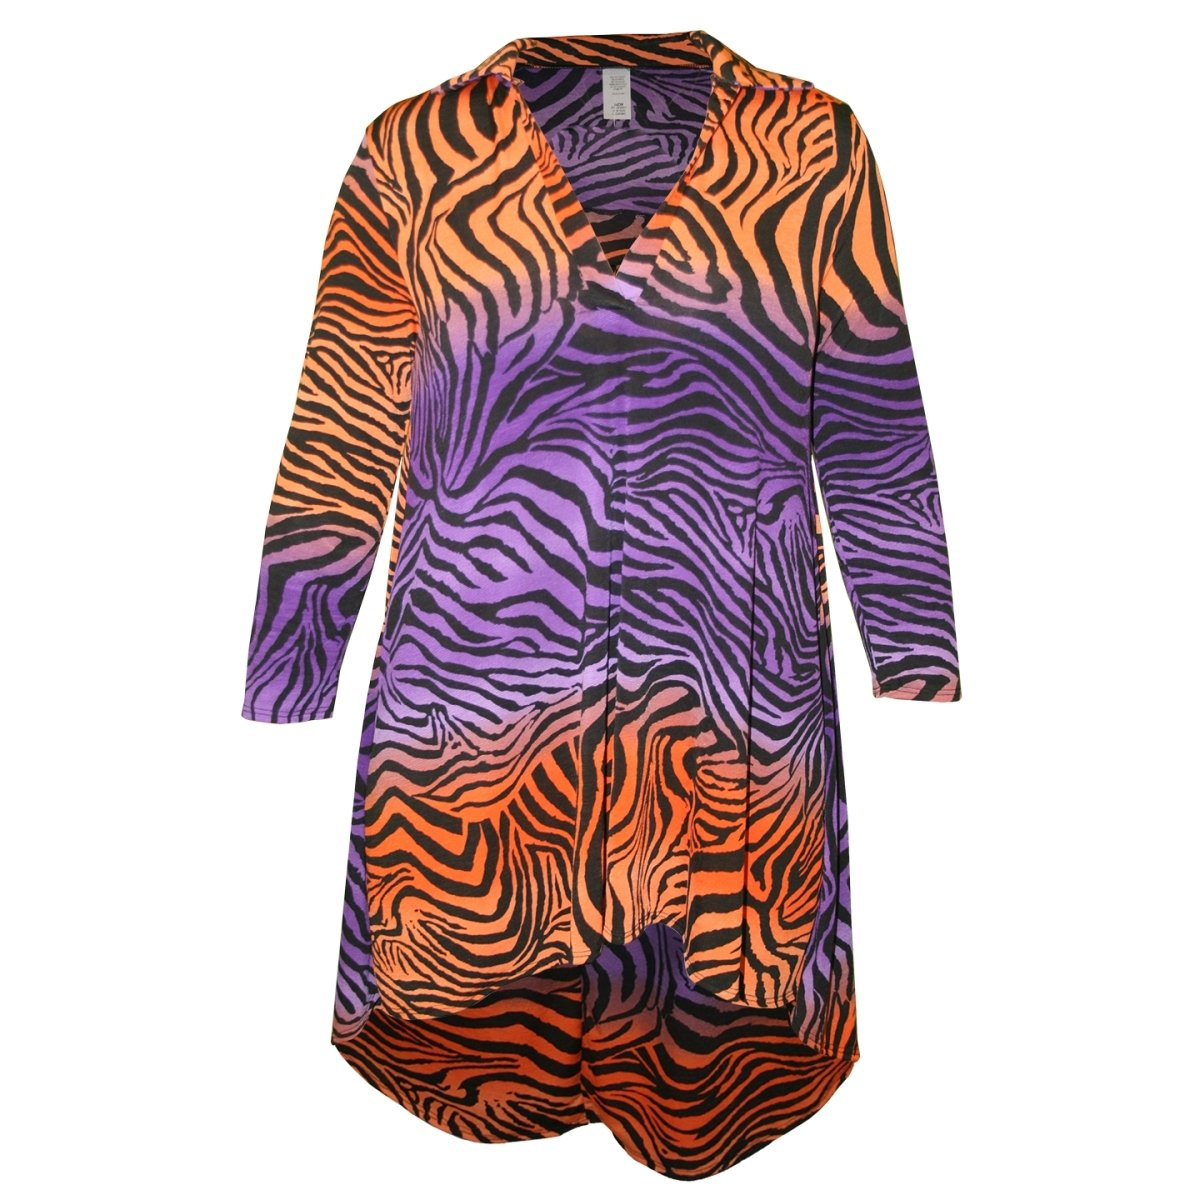 Collar Tunics Ombre With Black Tiger Stripes - Mr. Knickerbocker